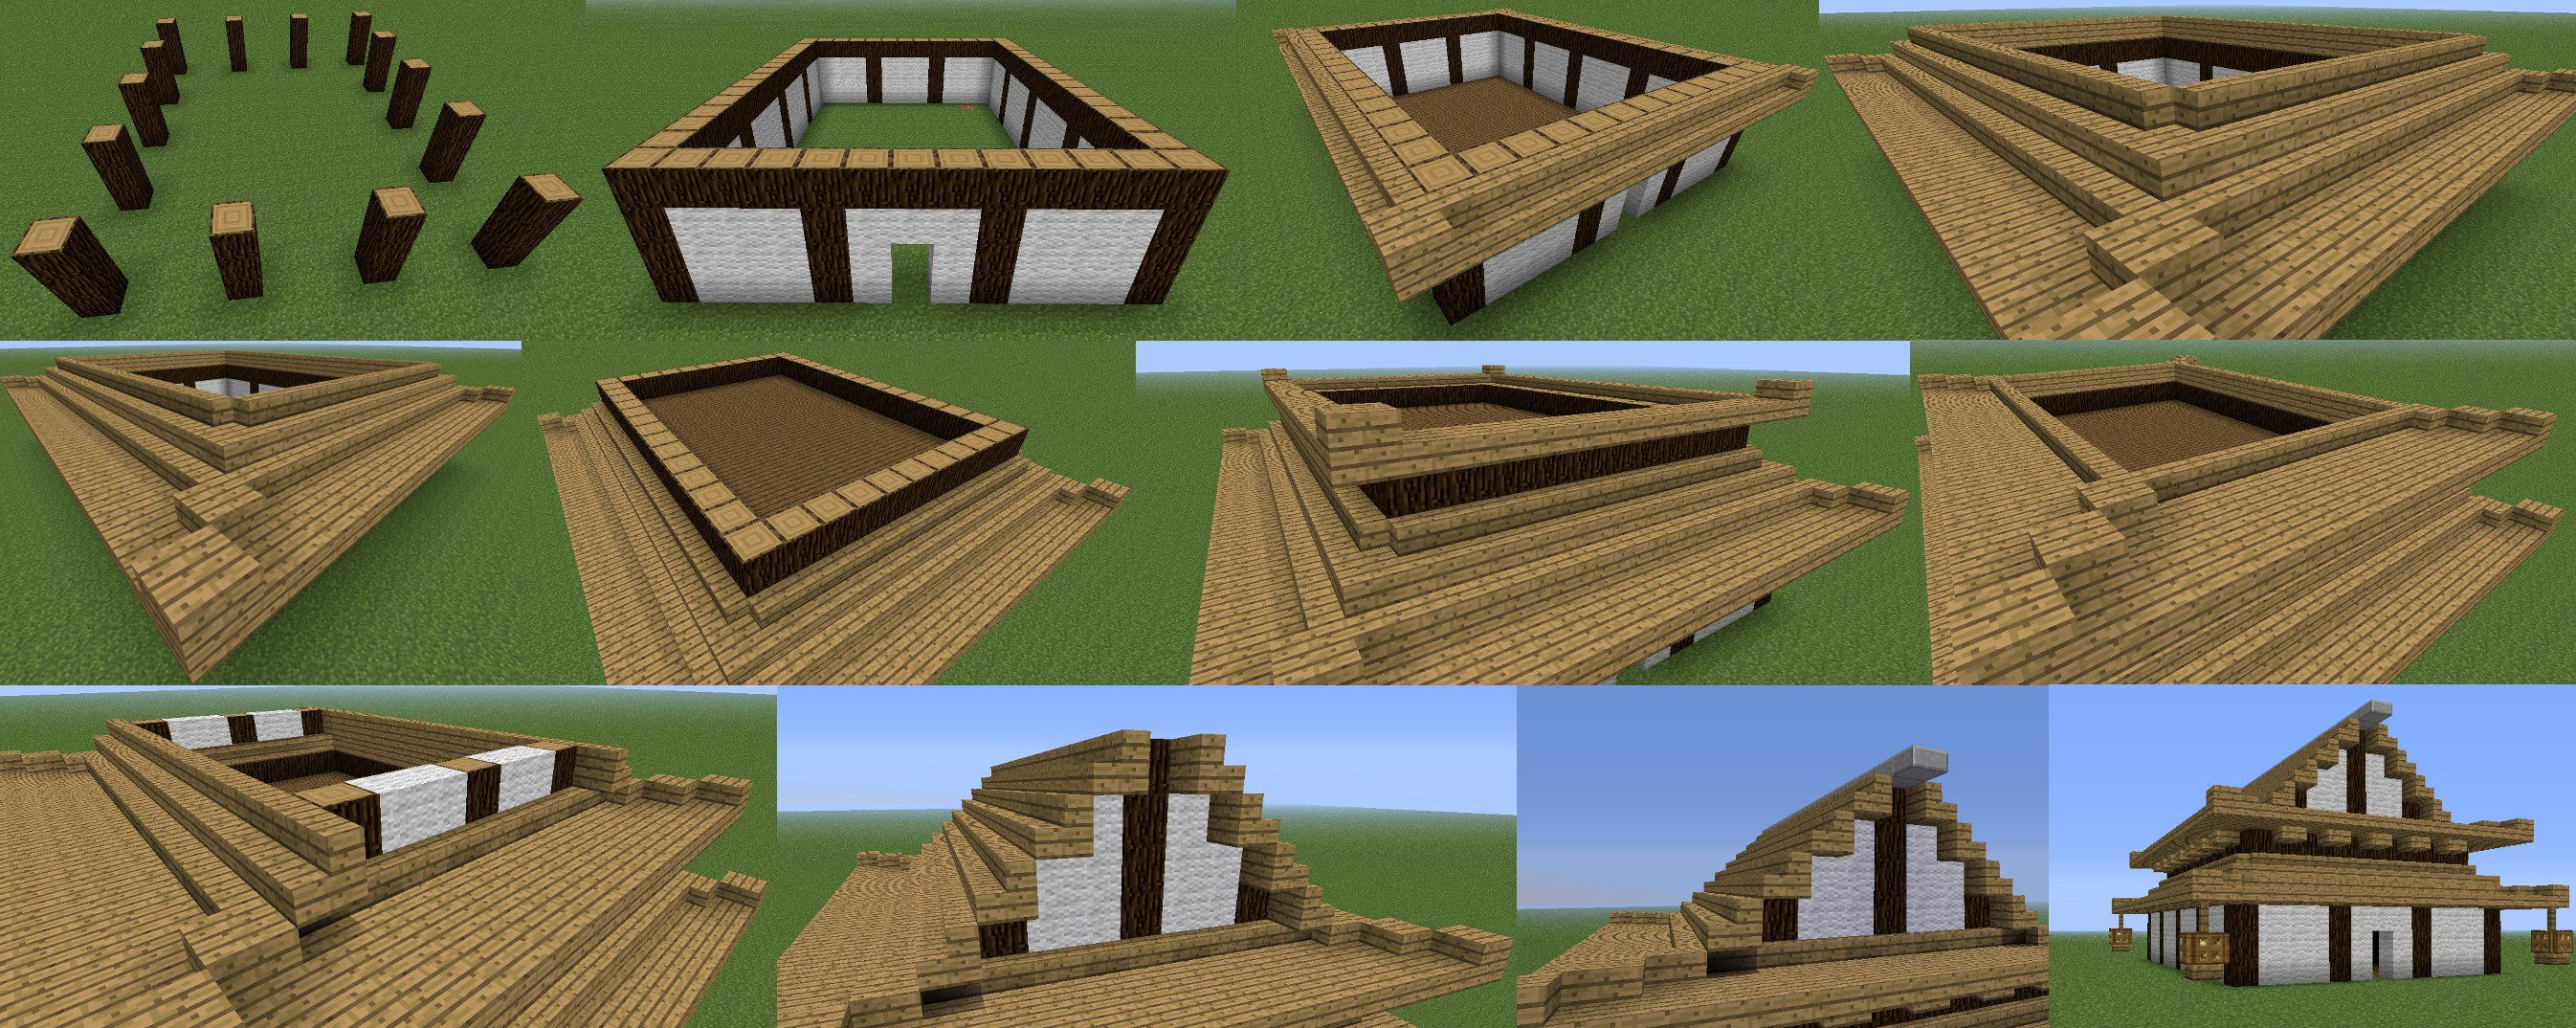 Tips On Building A House Interesting Japanese Building Style In Minecraft  Minecraft Guides Decorating Inspiration